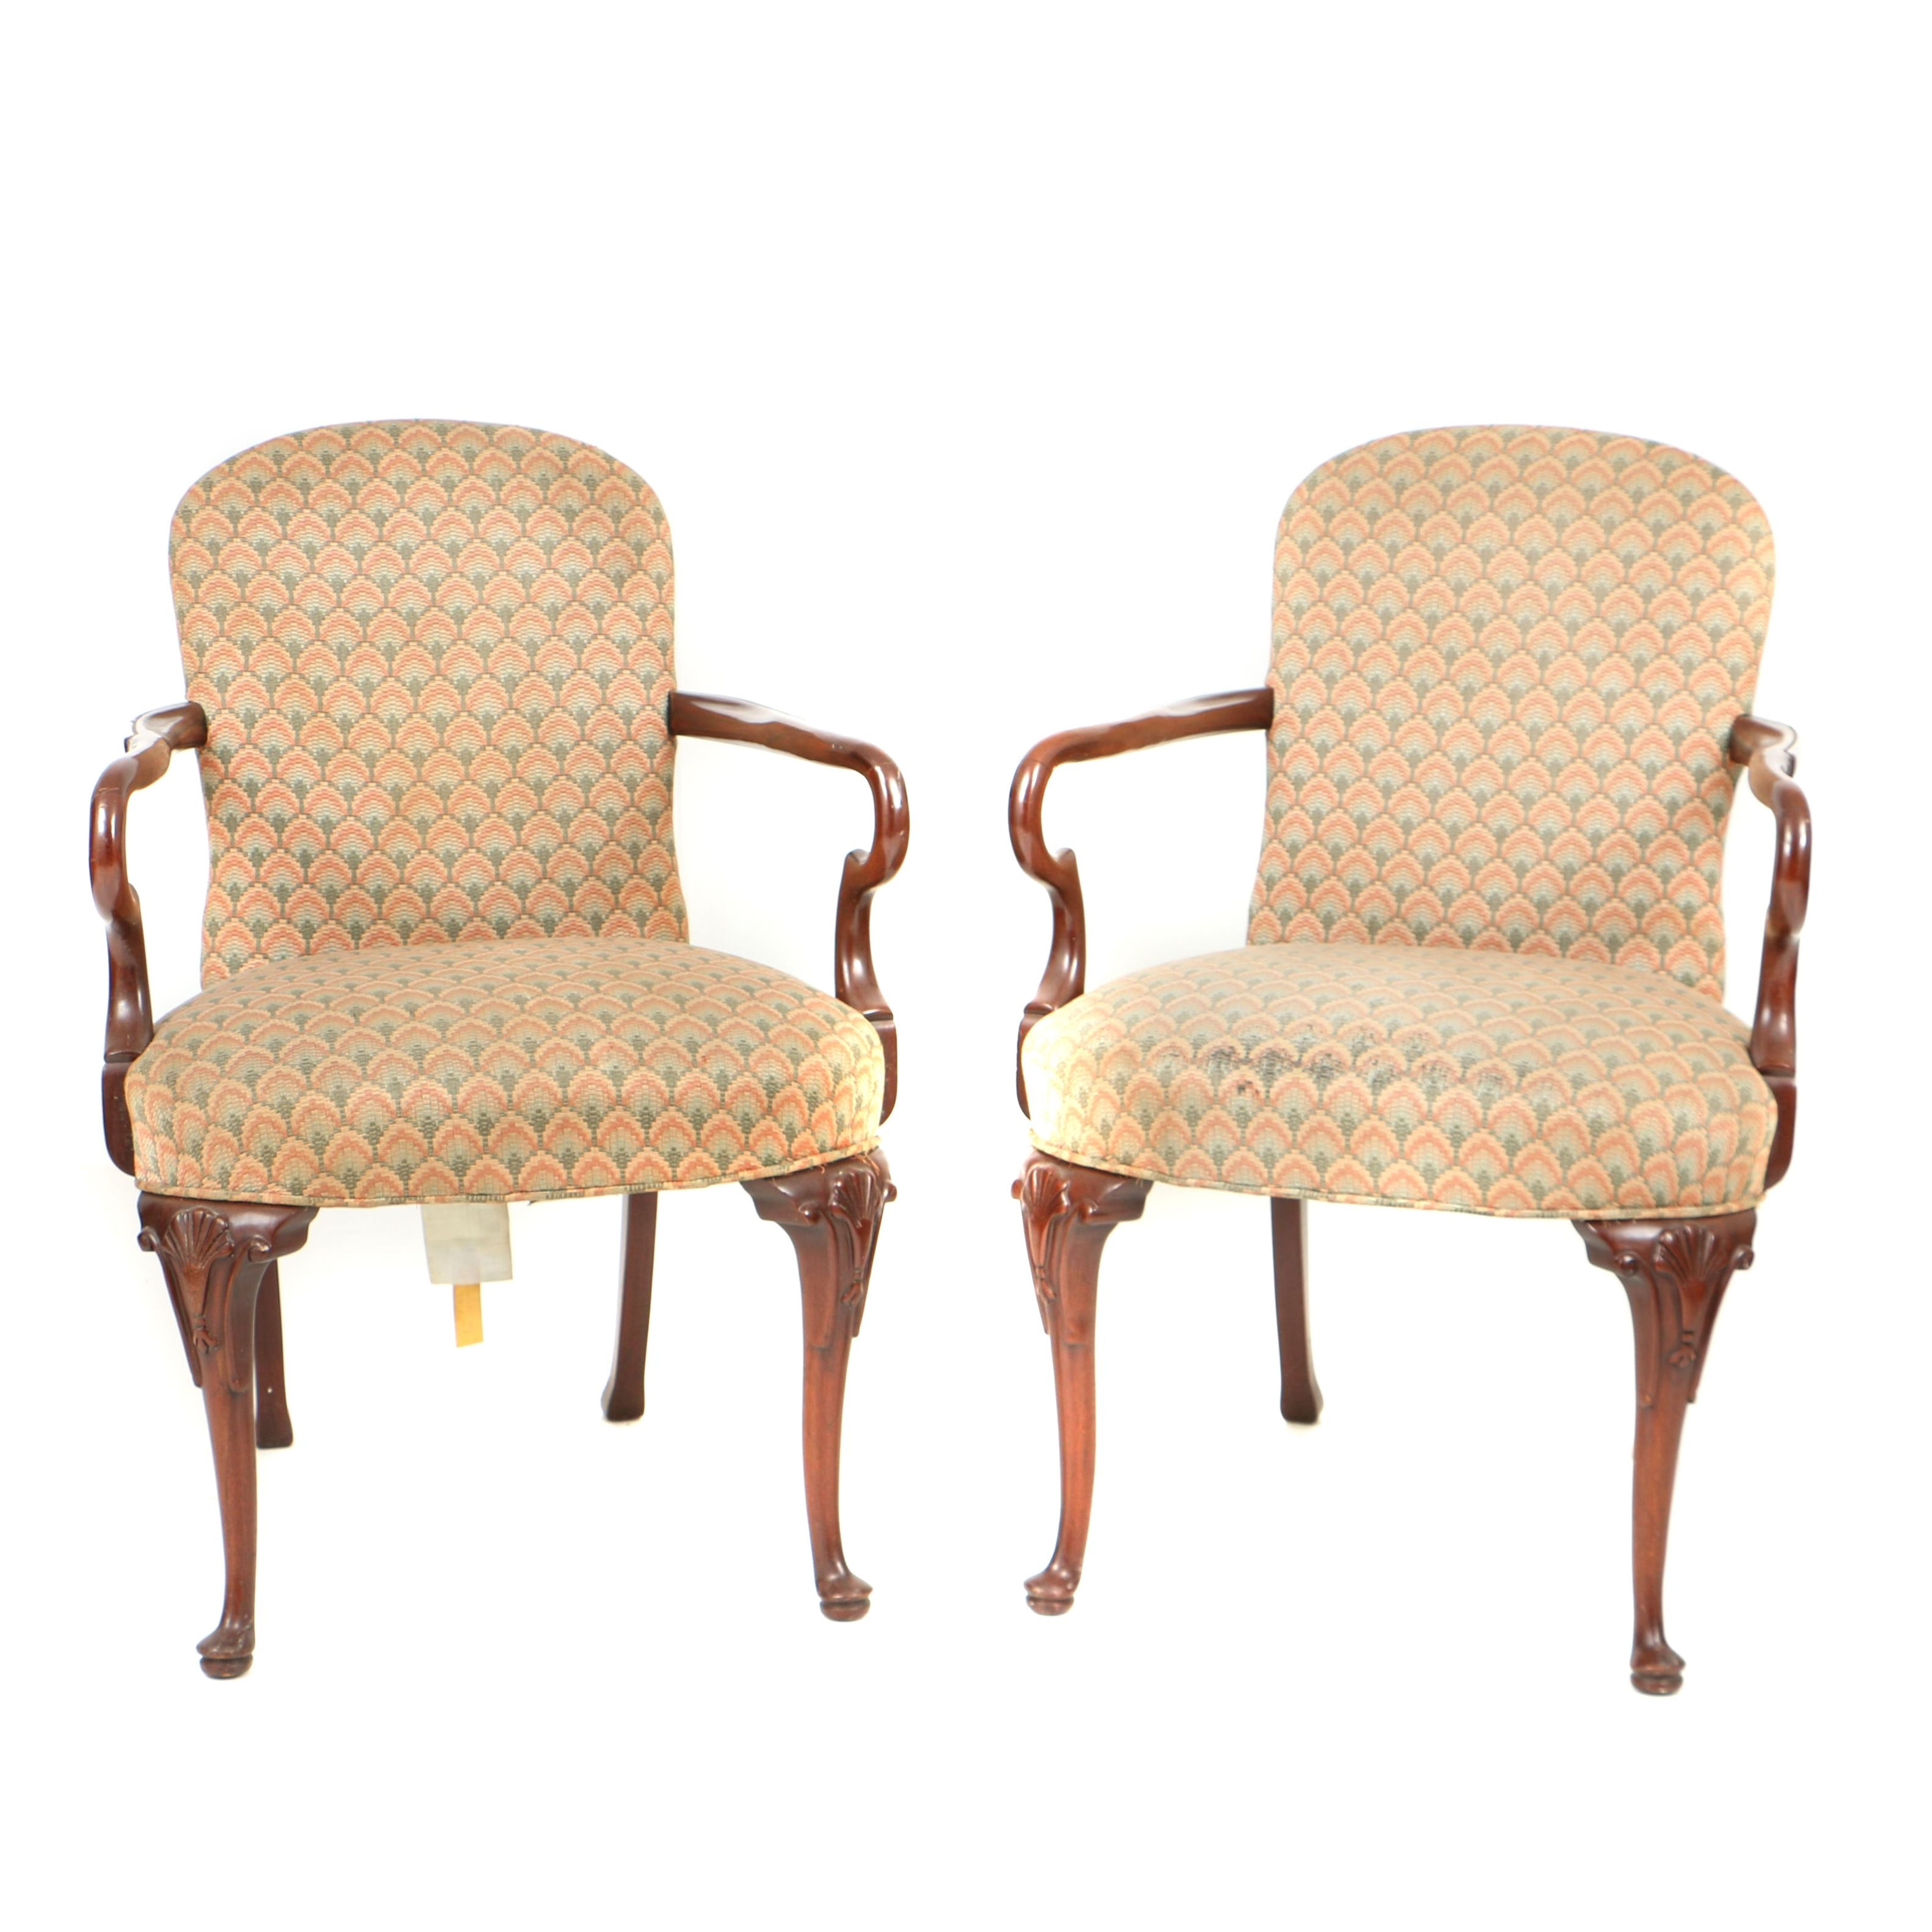 Hickory Chair Furniture Co. Queen Anne Style Open Armchairs in Mahogany